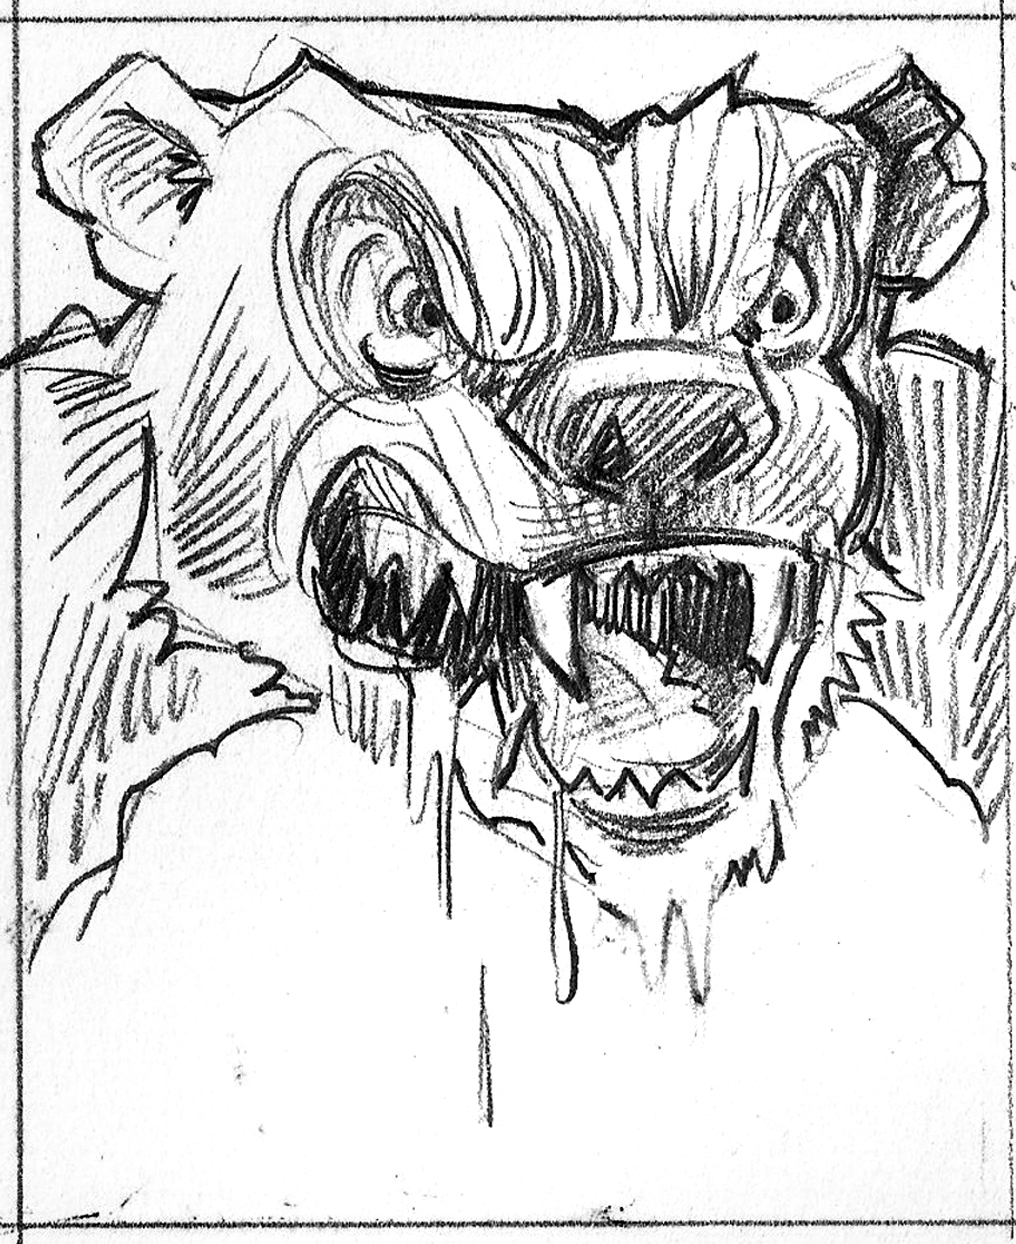 The bear got a bit too rabid in a few of my sketches. Spooky is fun. Terrifying? Not so much. Making kids cry is not a good marketing strategy.